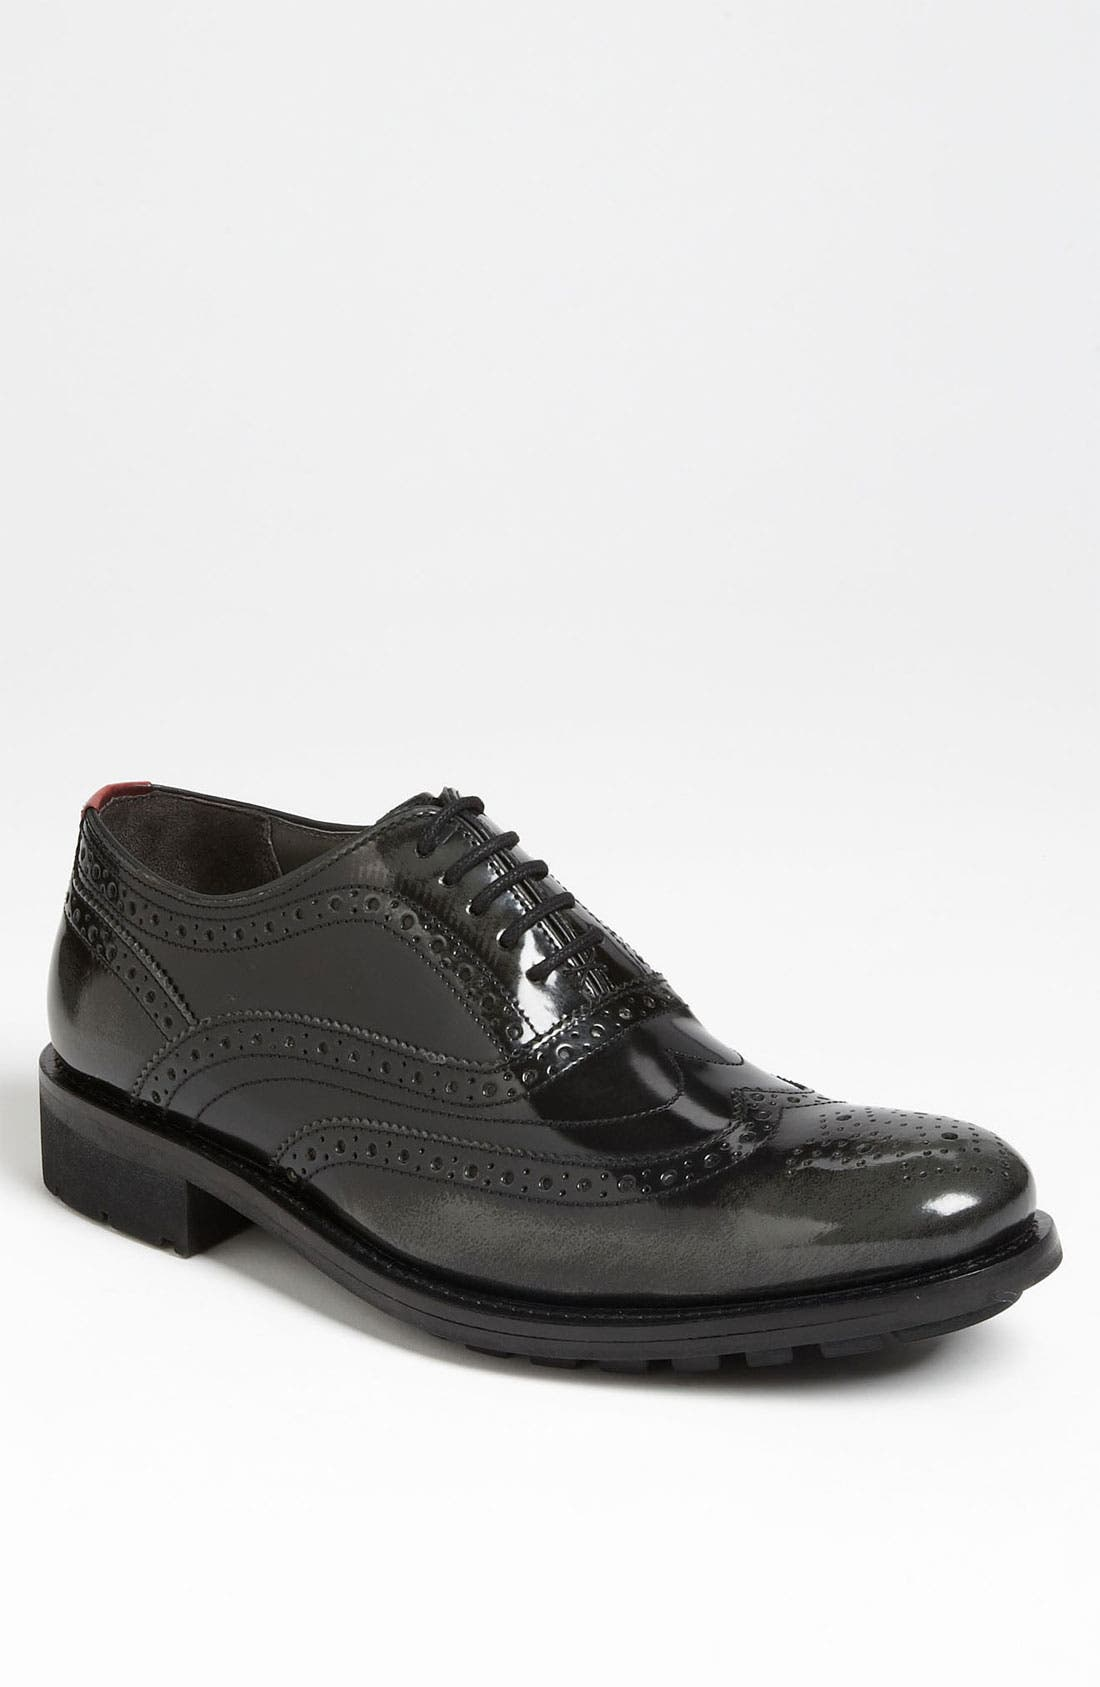 Main Image - Ted Baker London 'Guri-Rub' Wingtip Oxford